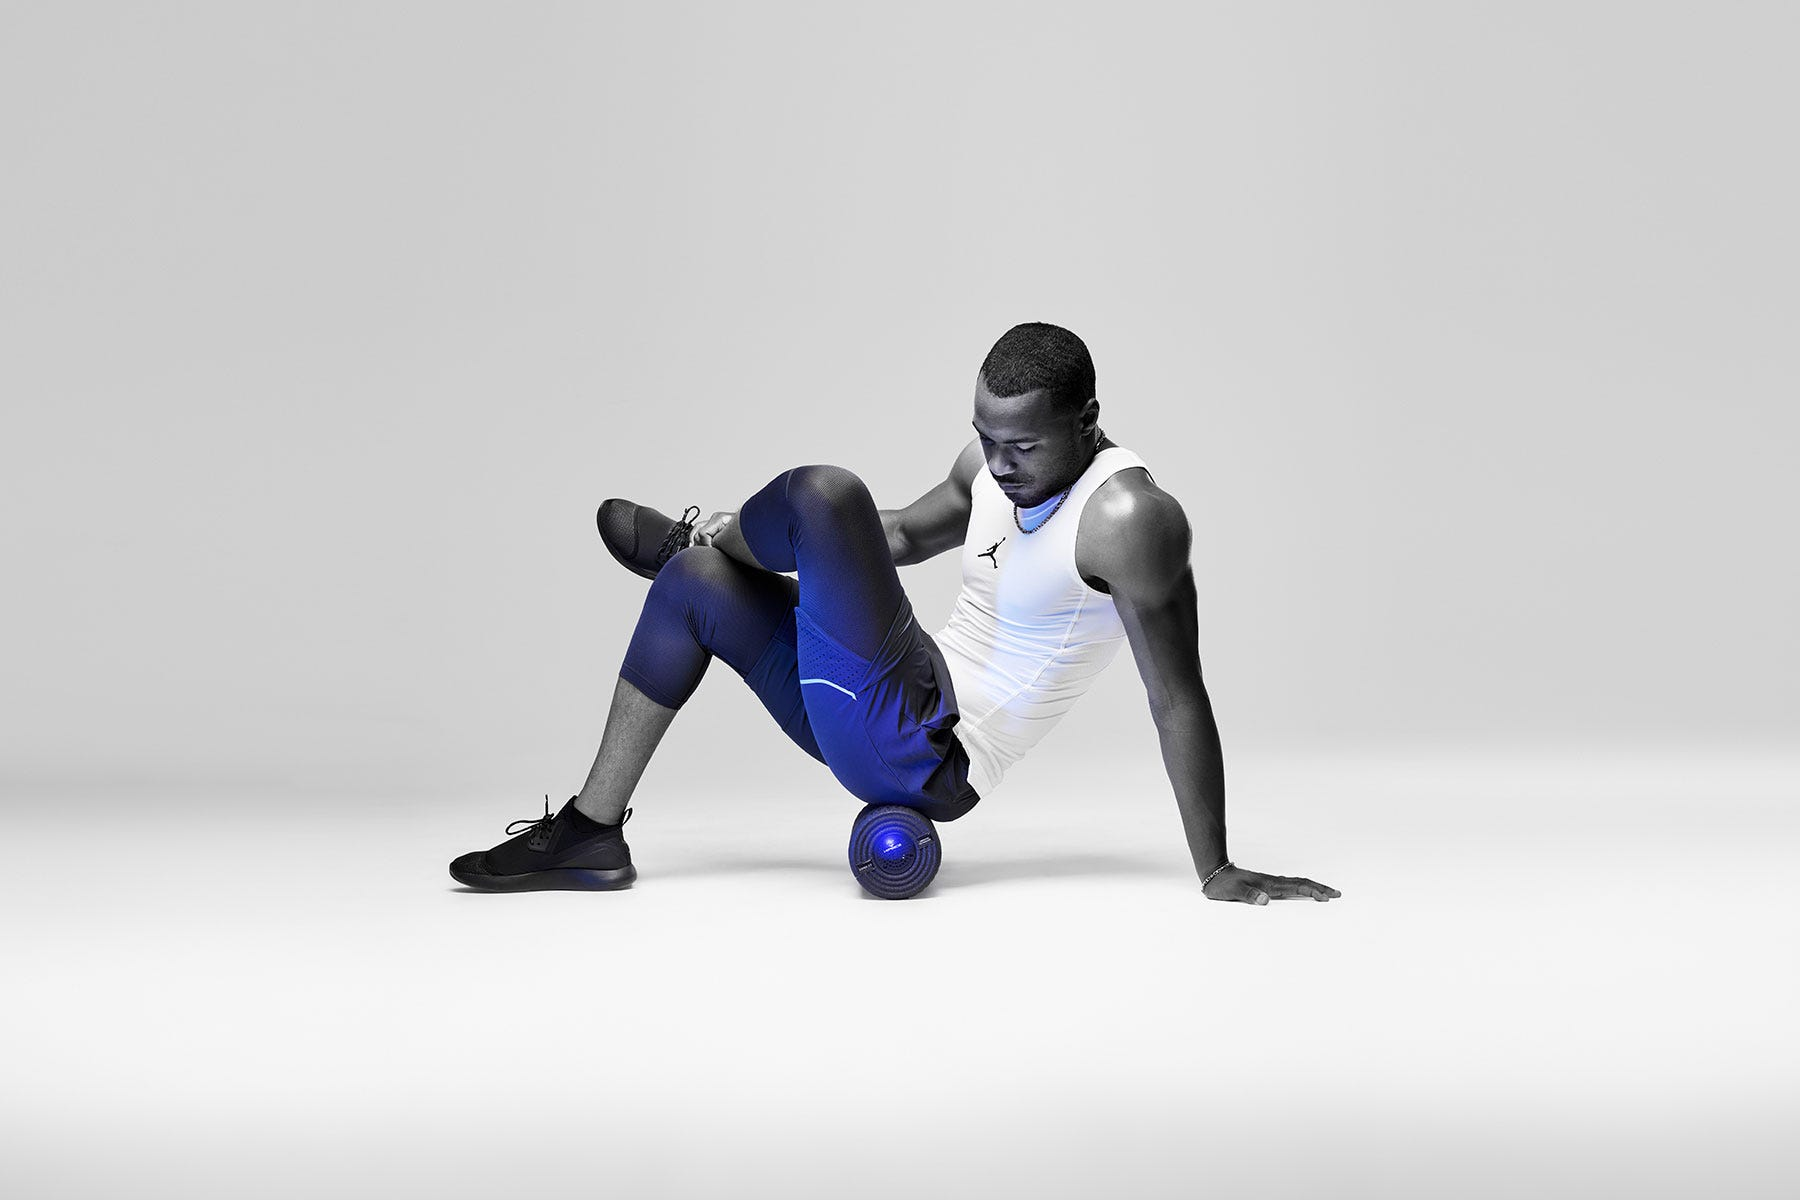 This vibrating foam roller increases range of motion by up to 40 percent according to fitness professionals.